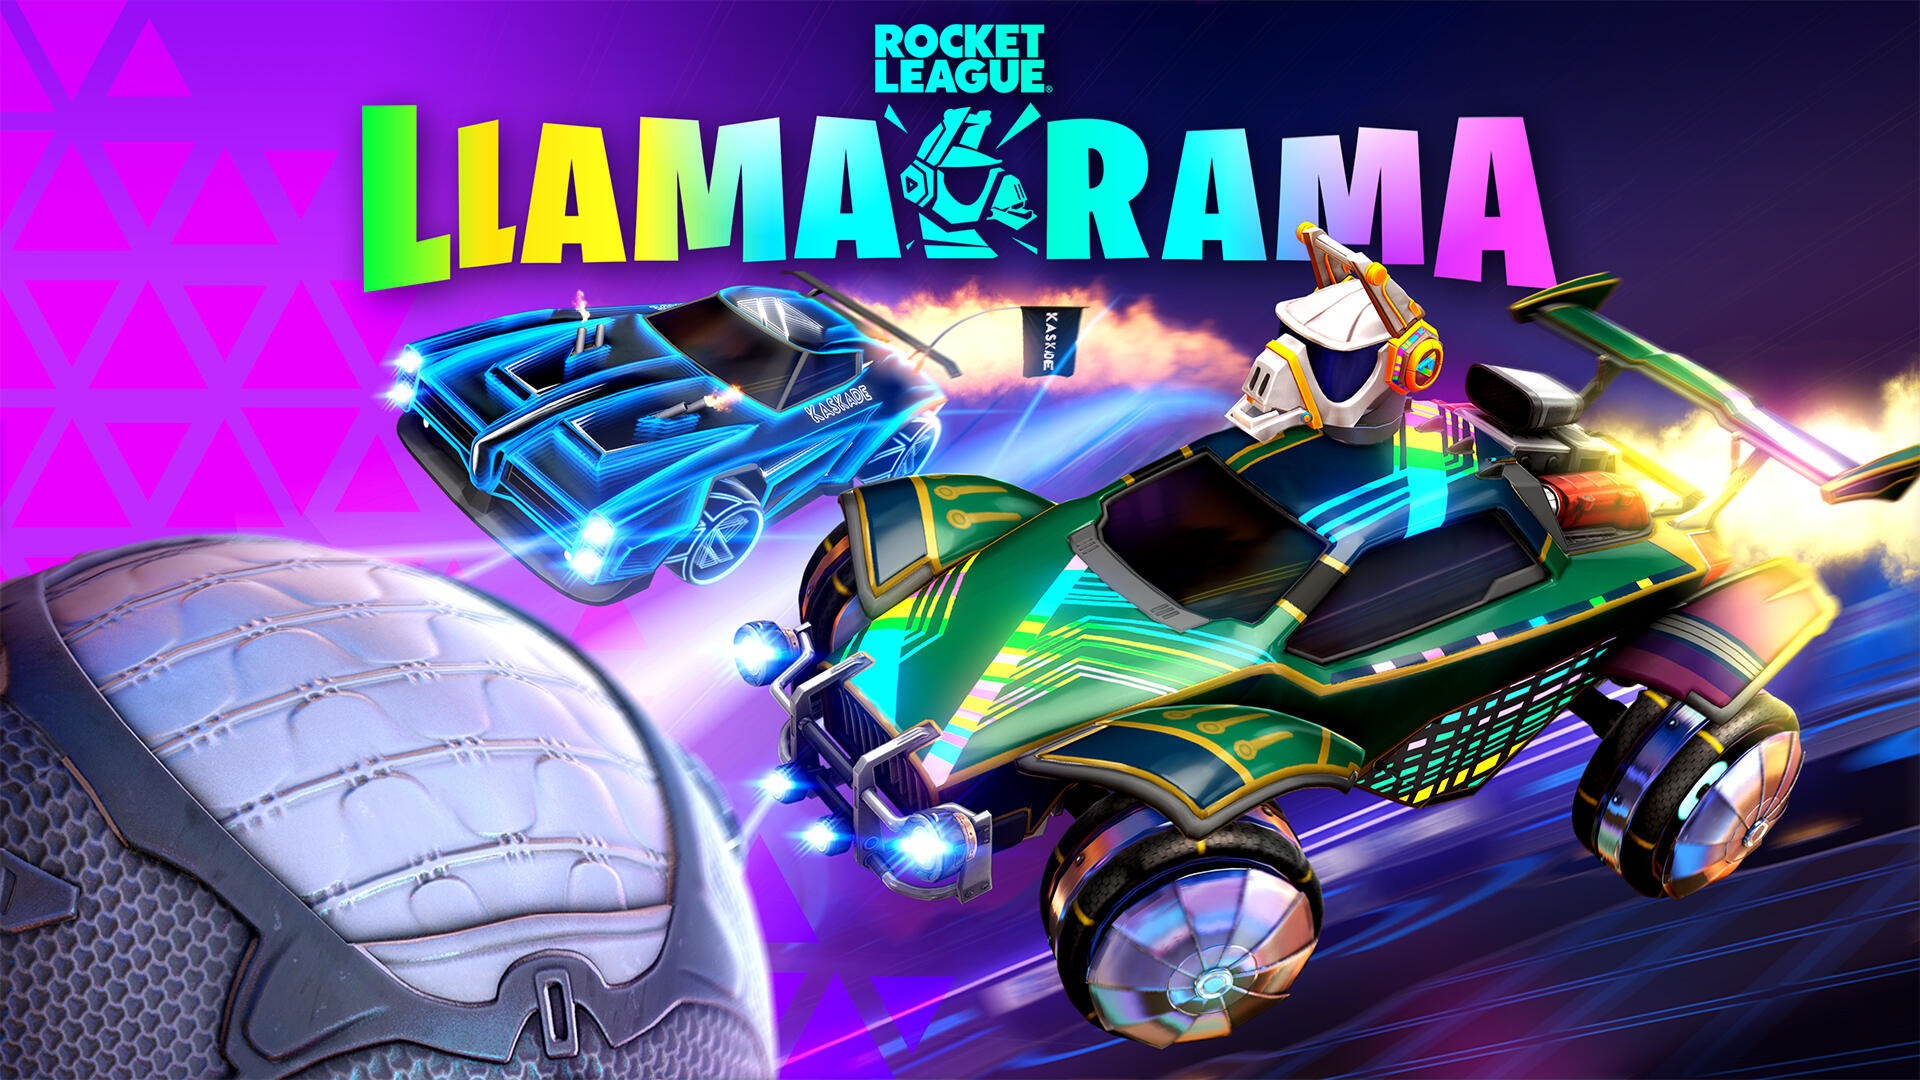 Fortnite's Llama-Rama event returns to Rocket League on March 25th